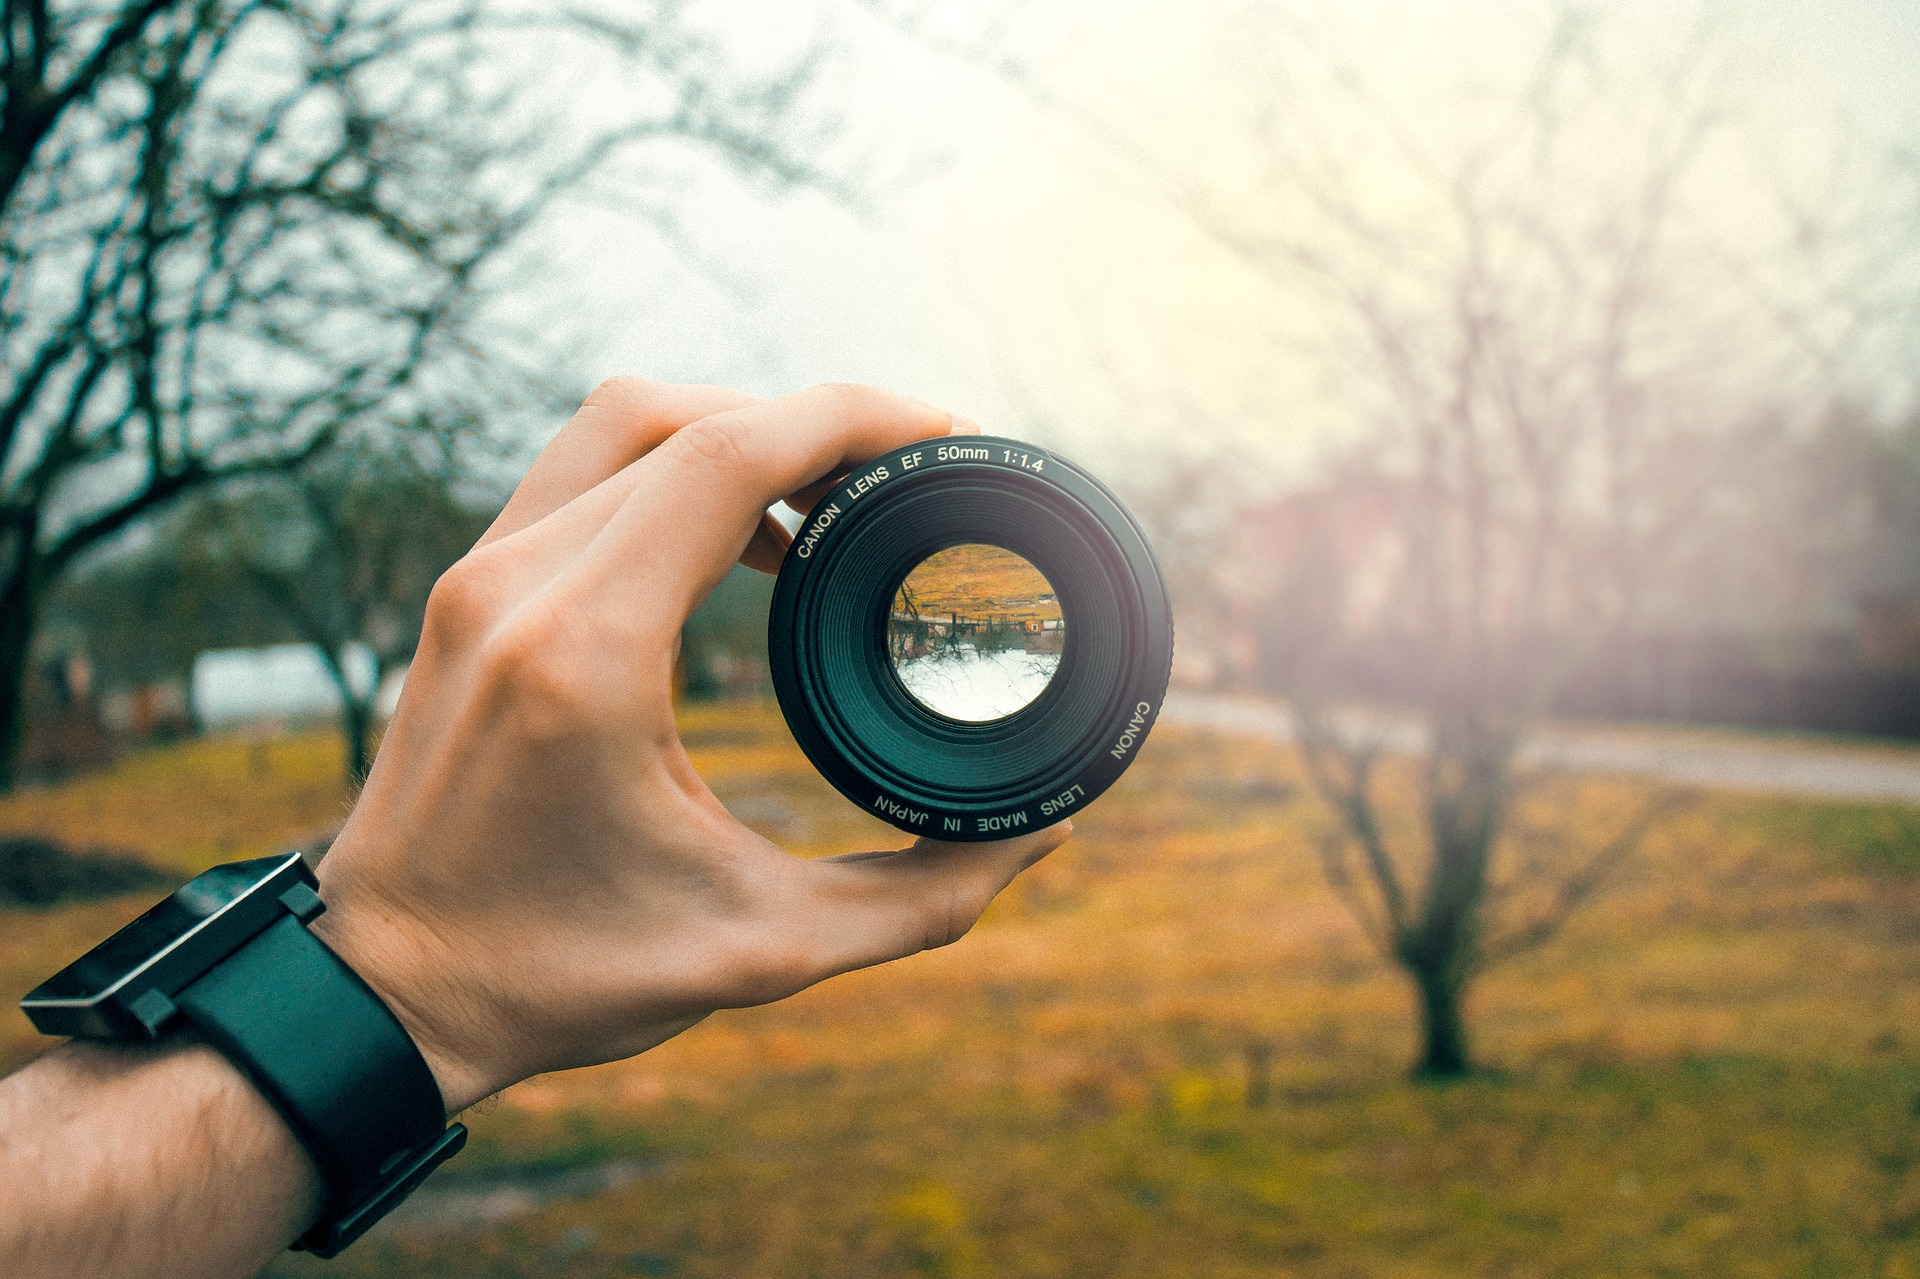 A strong image can capture the attention of your donors and potential donors. -